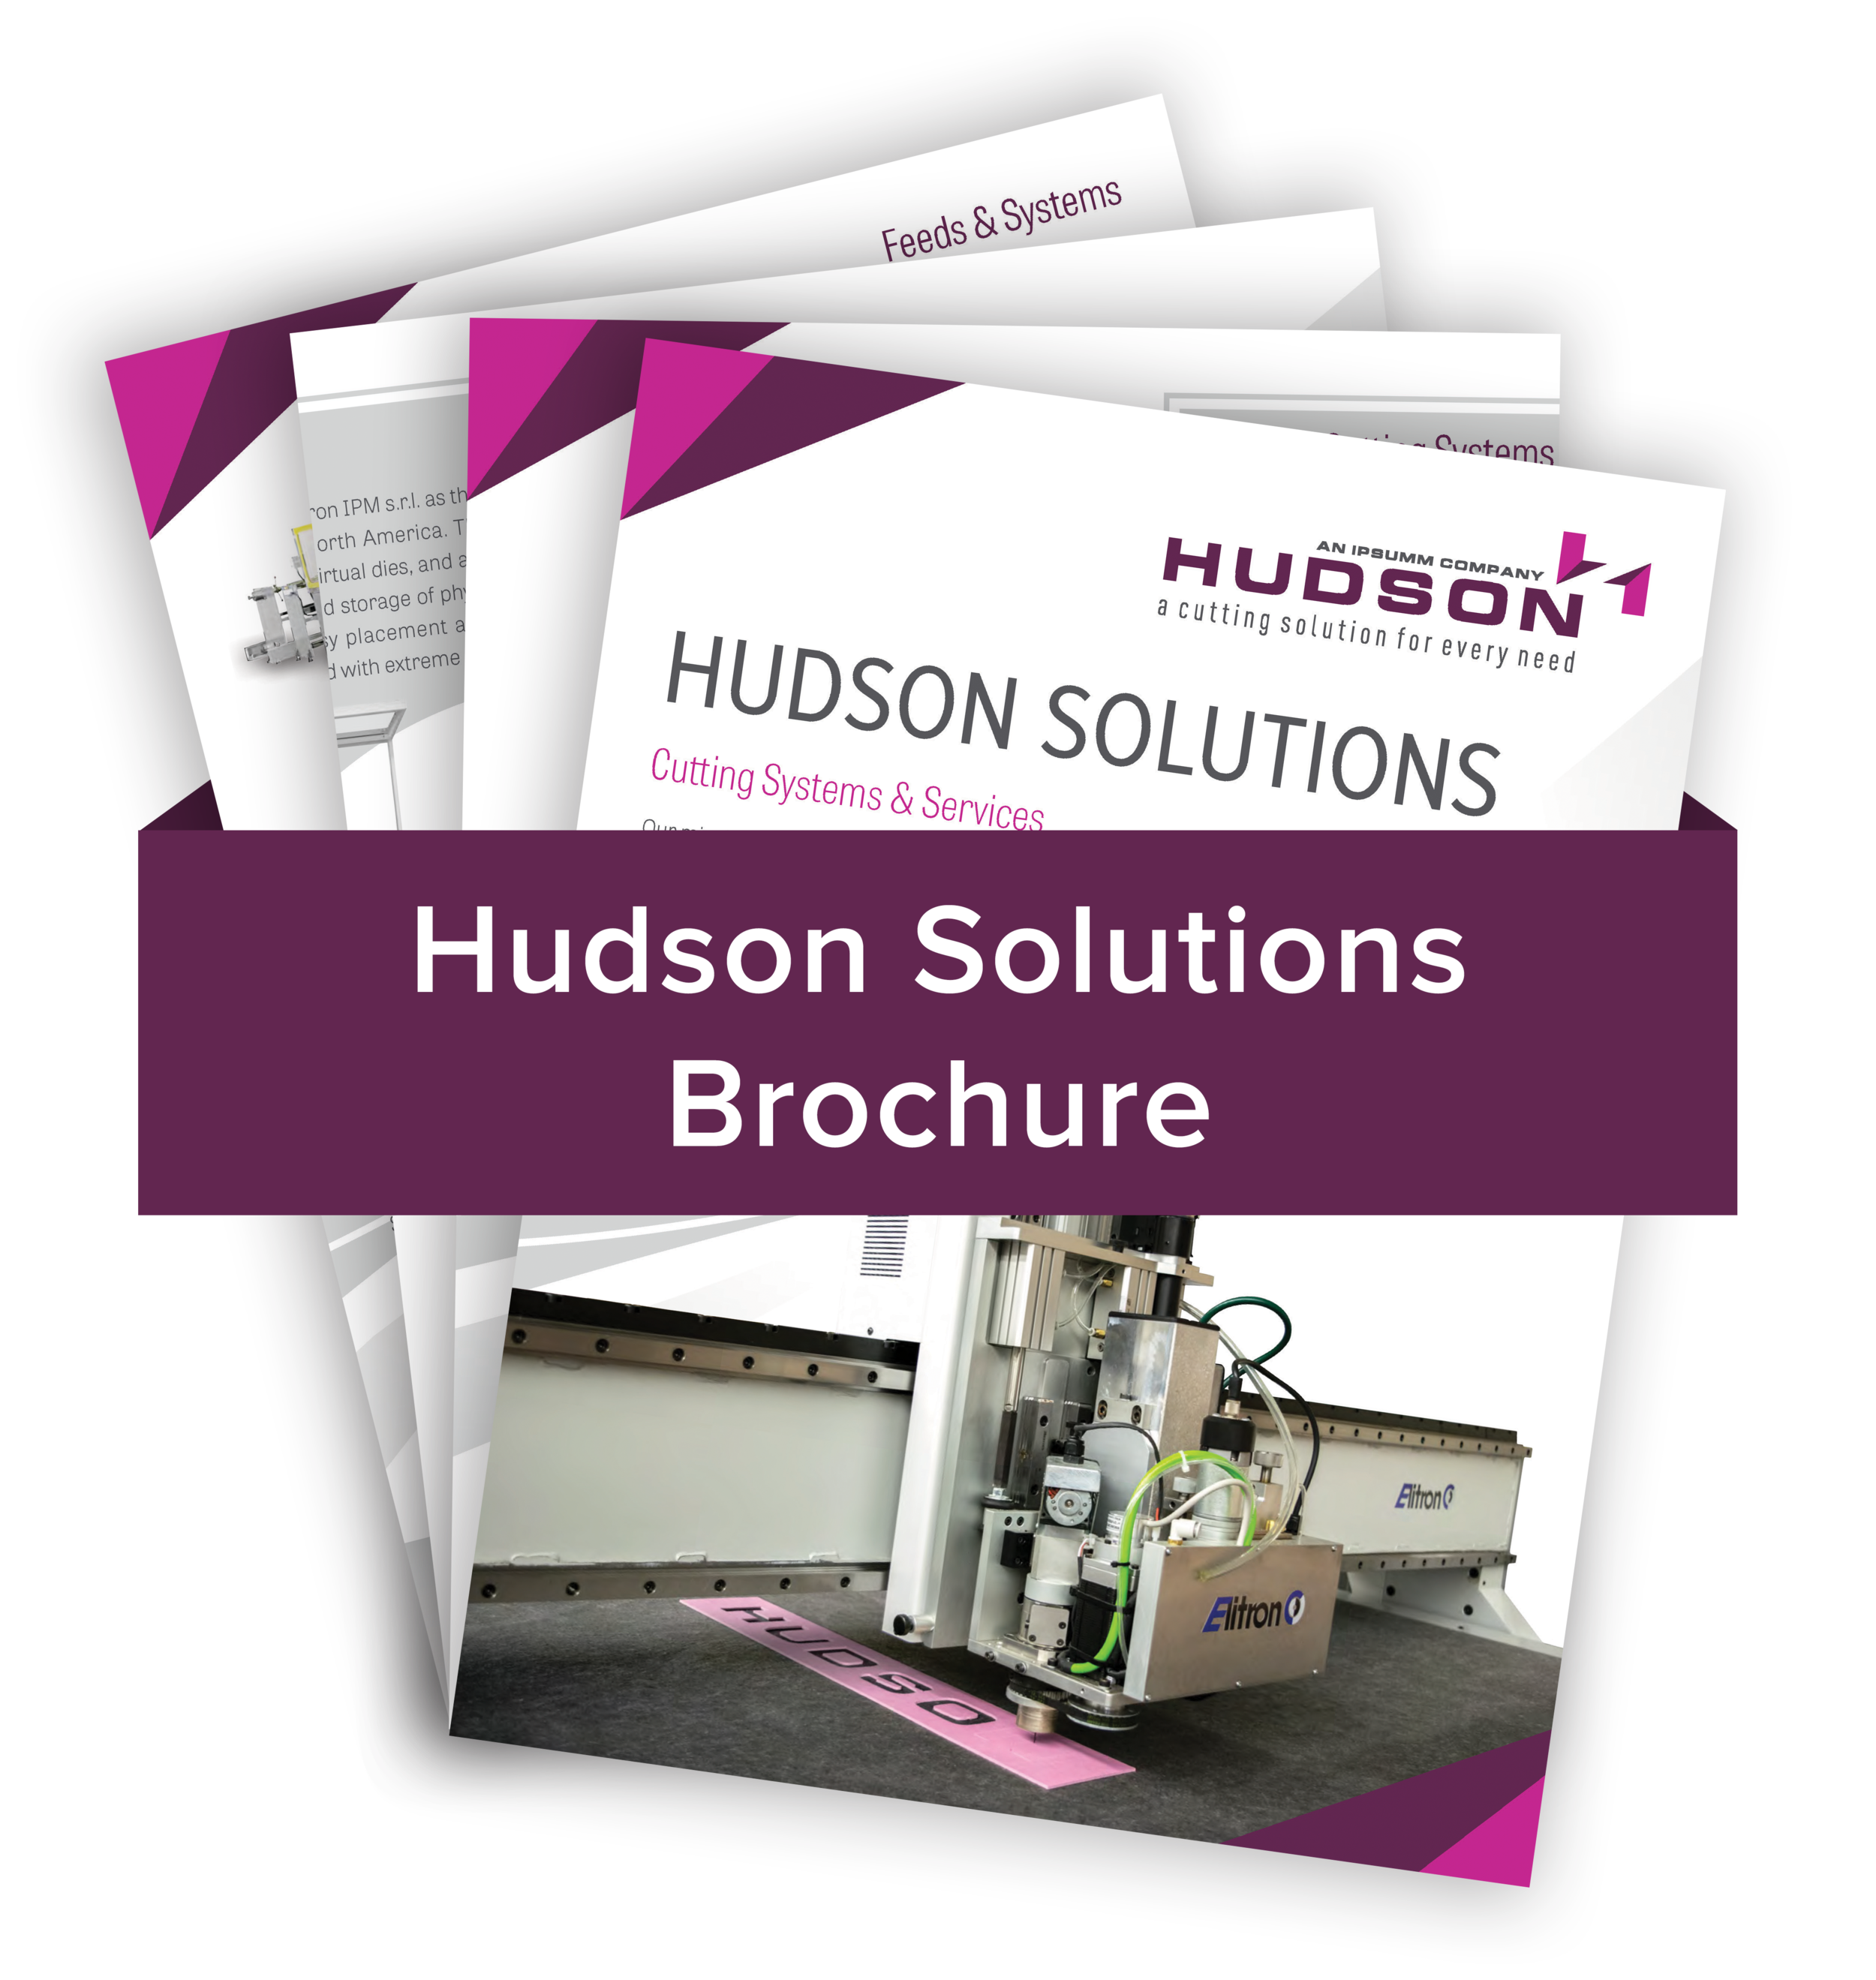 Download the Hudson Solutions brochure to see our full range of problem solving machines and services! Click the image, or  click here to view.